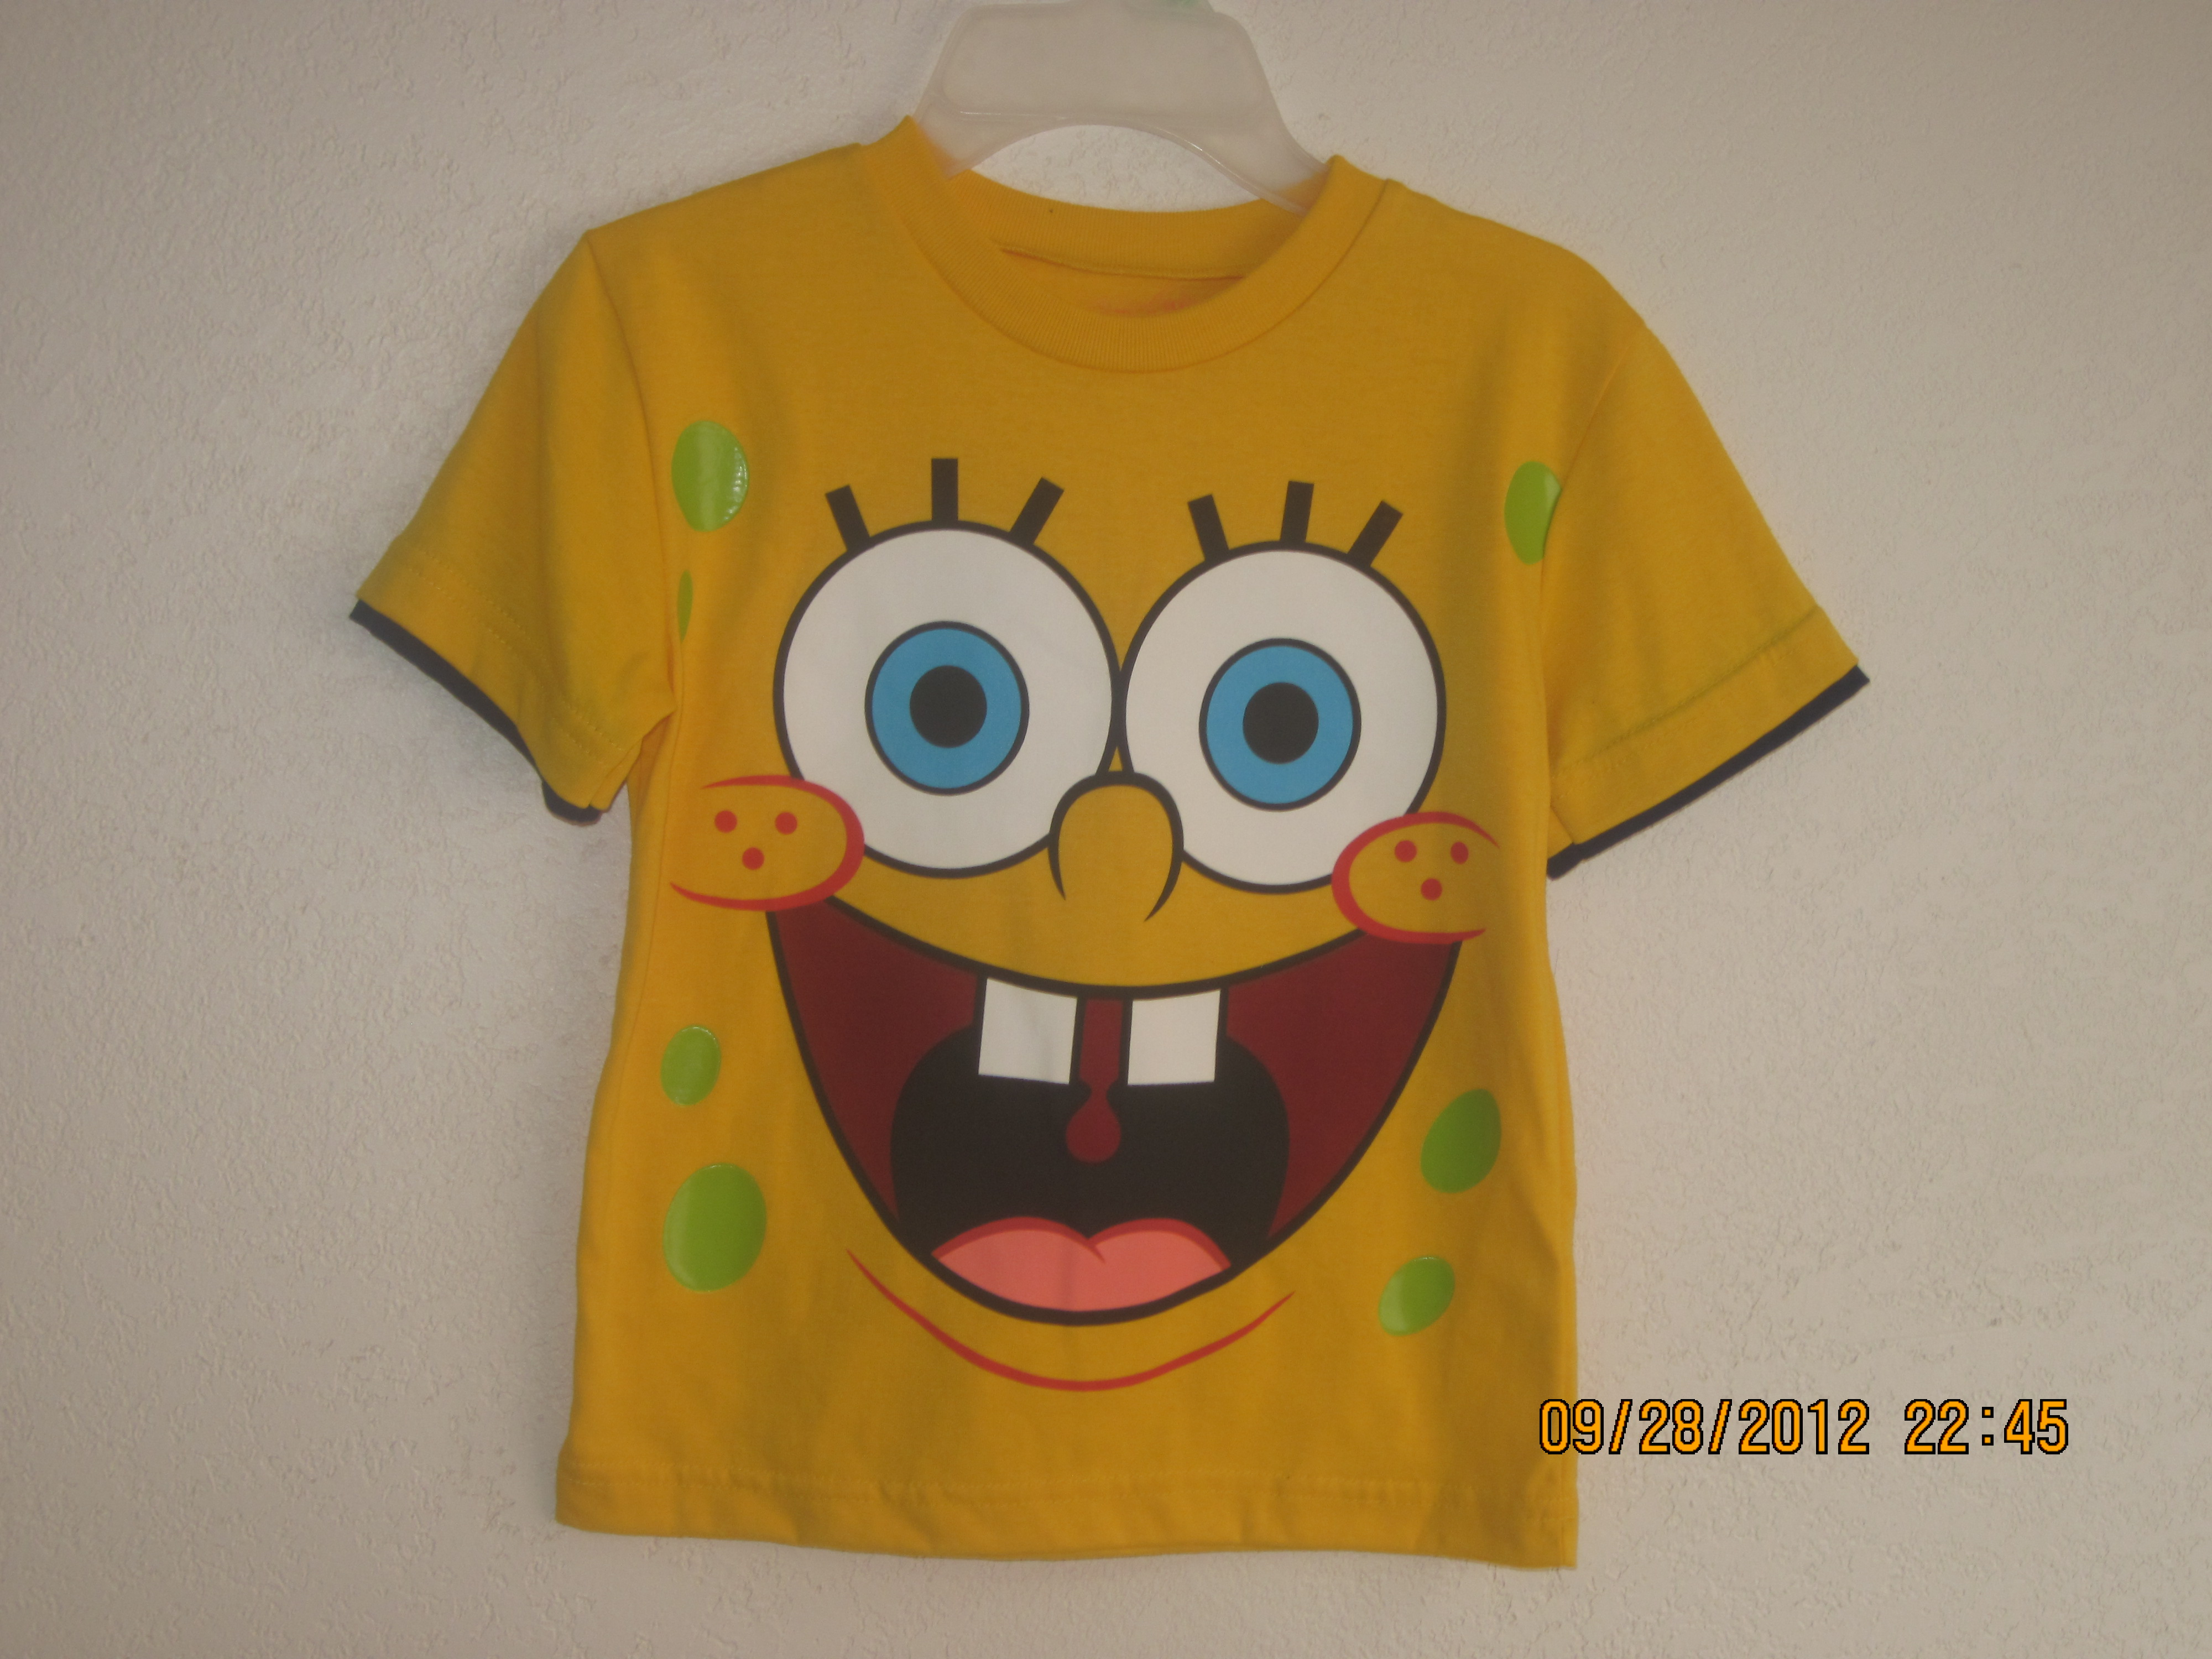 Spongebob T-Shirt Sz M 5/6 (Yellow)